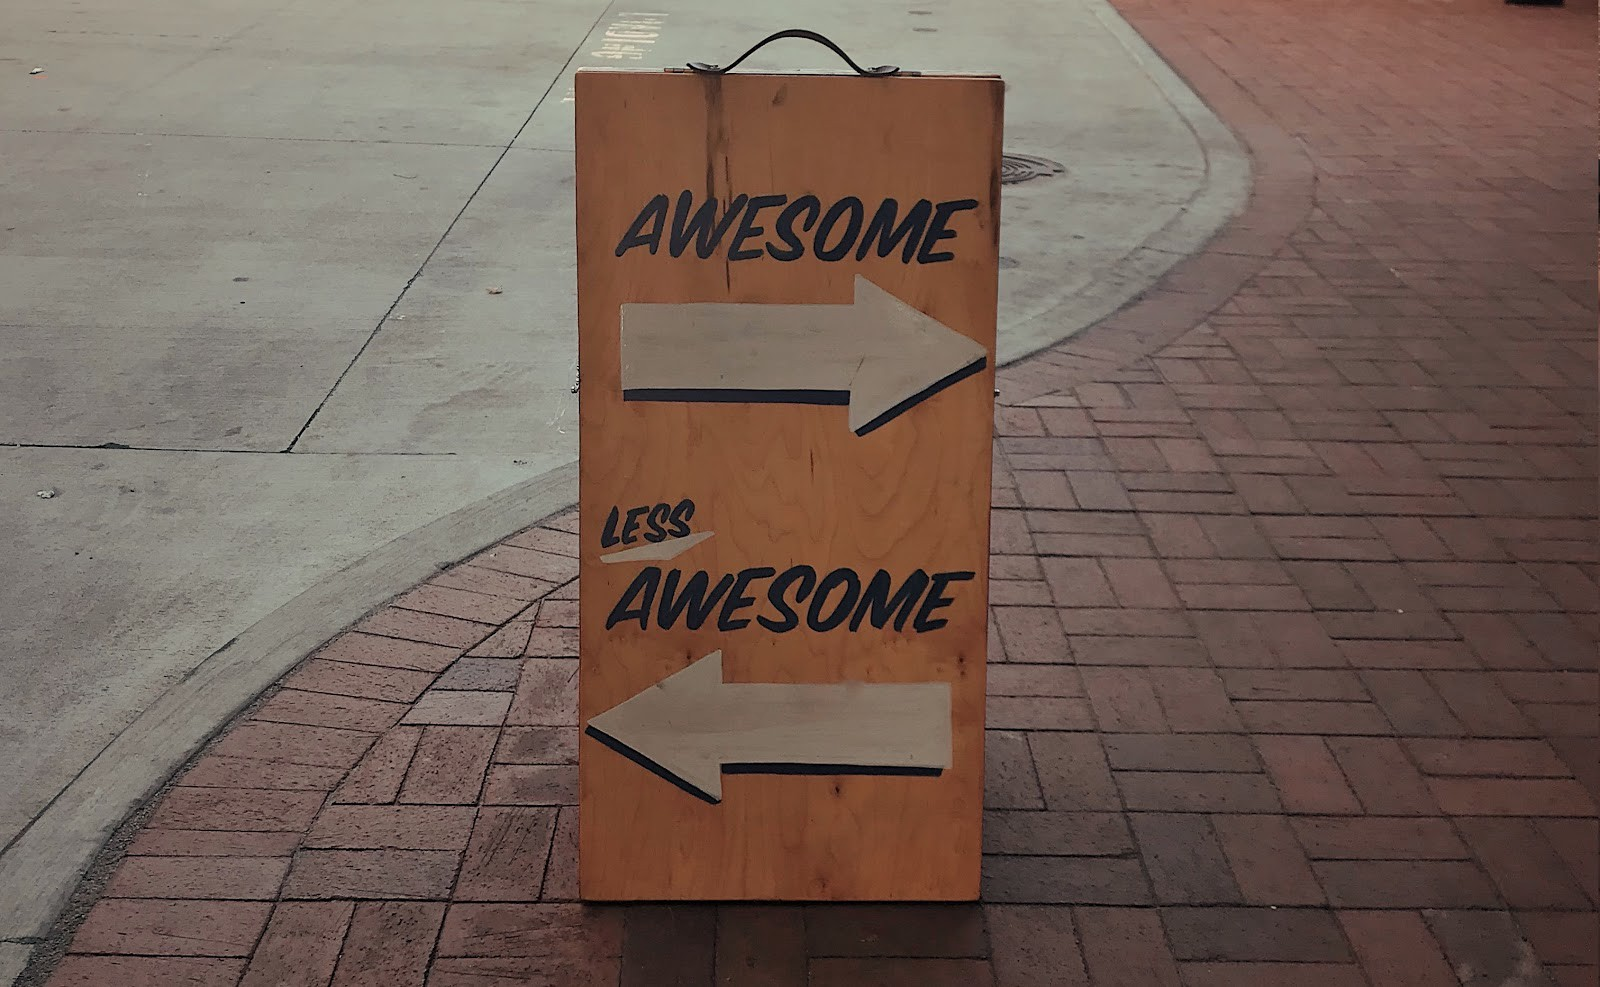 """Sign with an arrow pointing to the right that indicates """"Awesome,"""" and an arrow pointing to the left that says """"Less Awesome"""""""